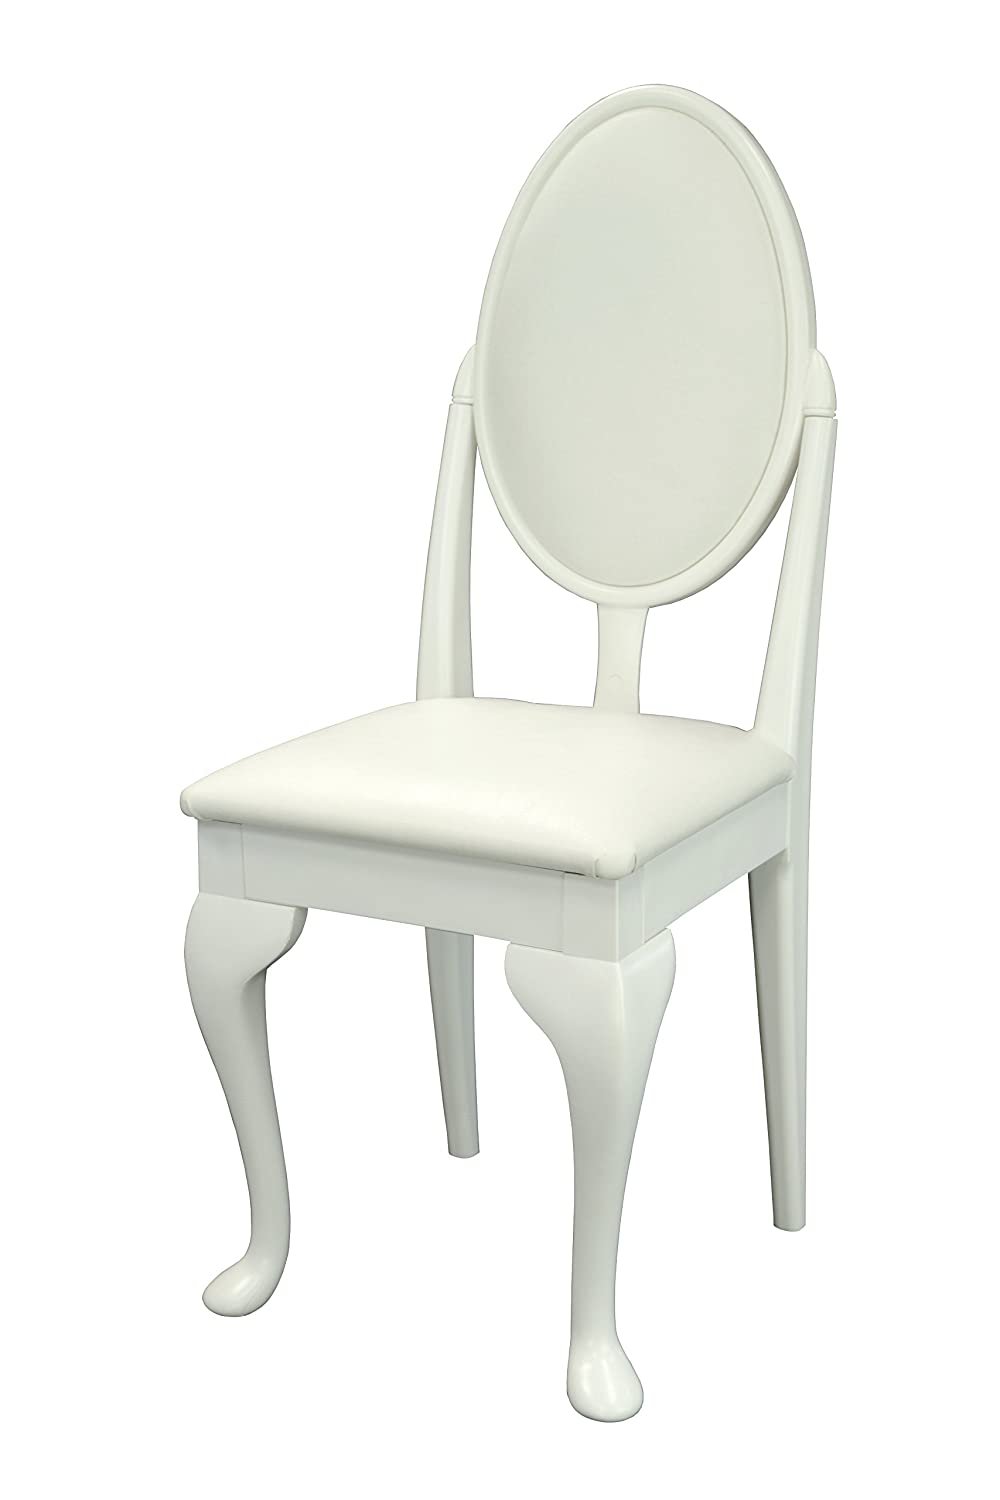 Leather Bedroom Chair White Dressing Table Bedroom Chair With Cabriole Legs And White